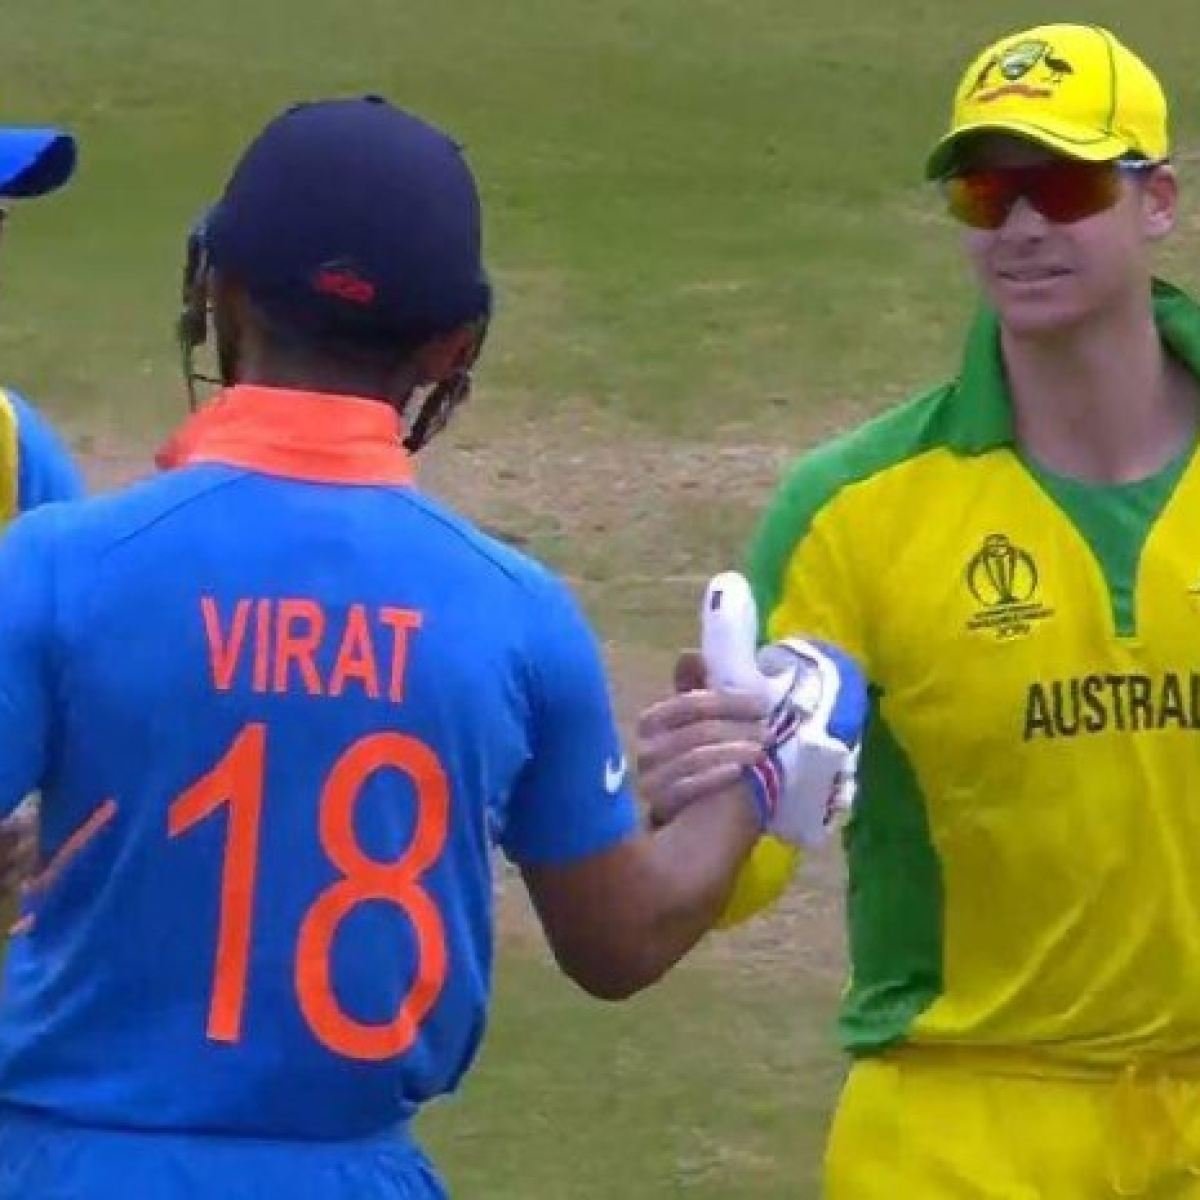 Steve Waugh tells Aussies to avoid sledging Virat Kohli